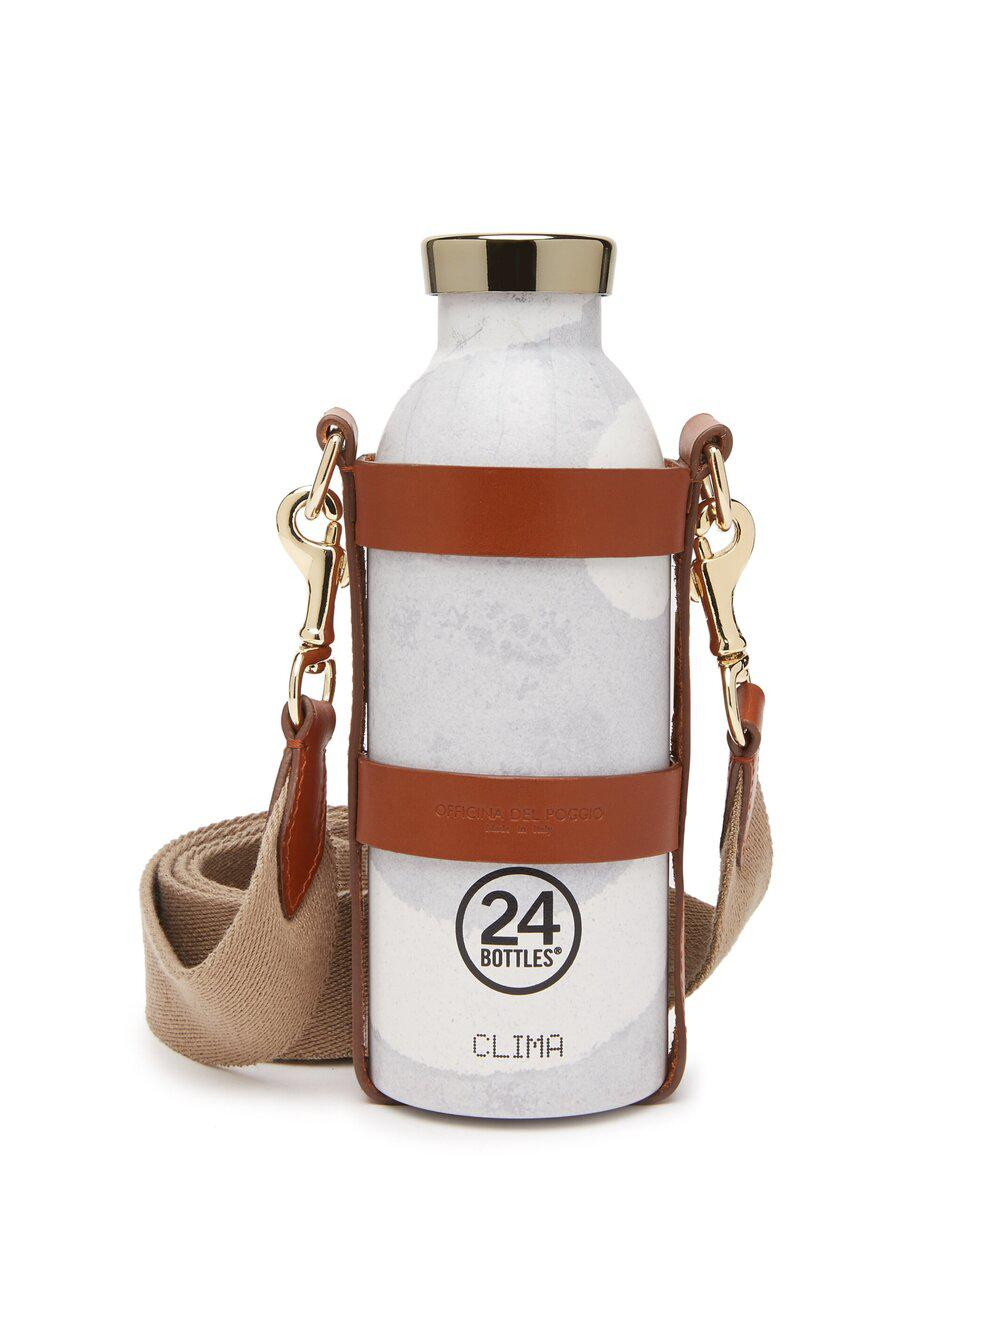 NEW Bottle Bag with Bottle - Tan Leather